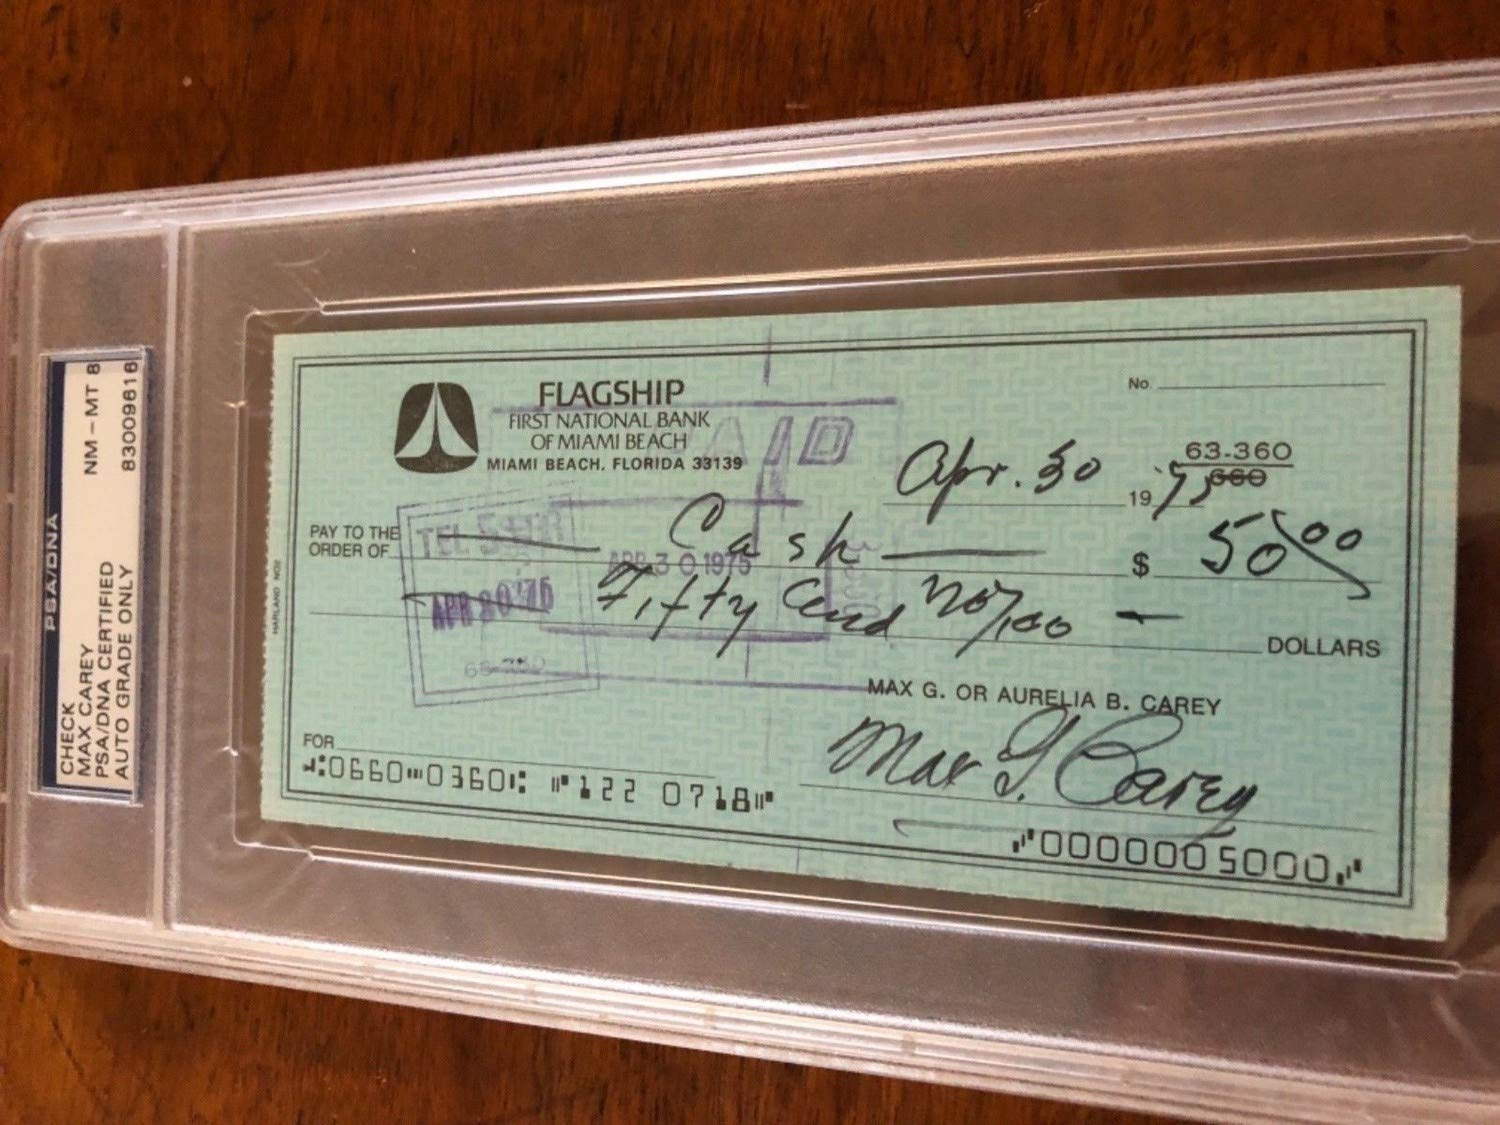 Max Carey Autographed Signed Check PSA/DNA 8 Autographed Signed 2XS 1995